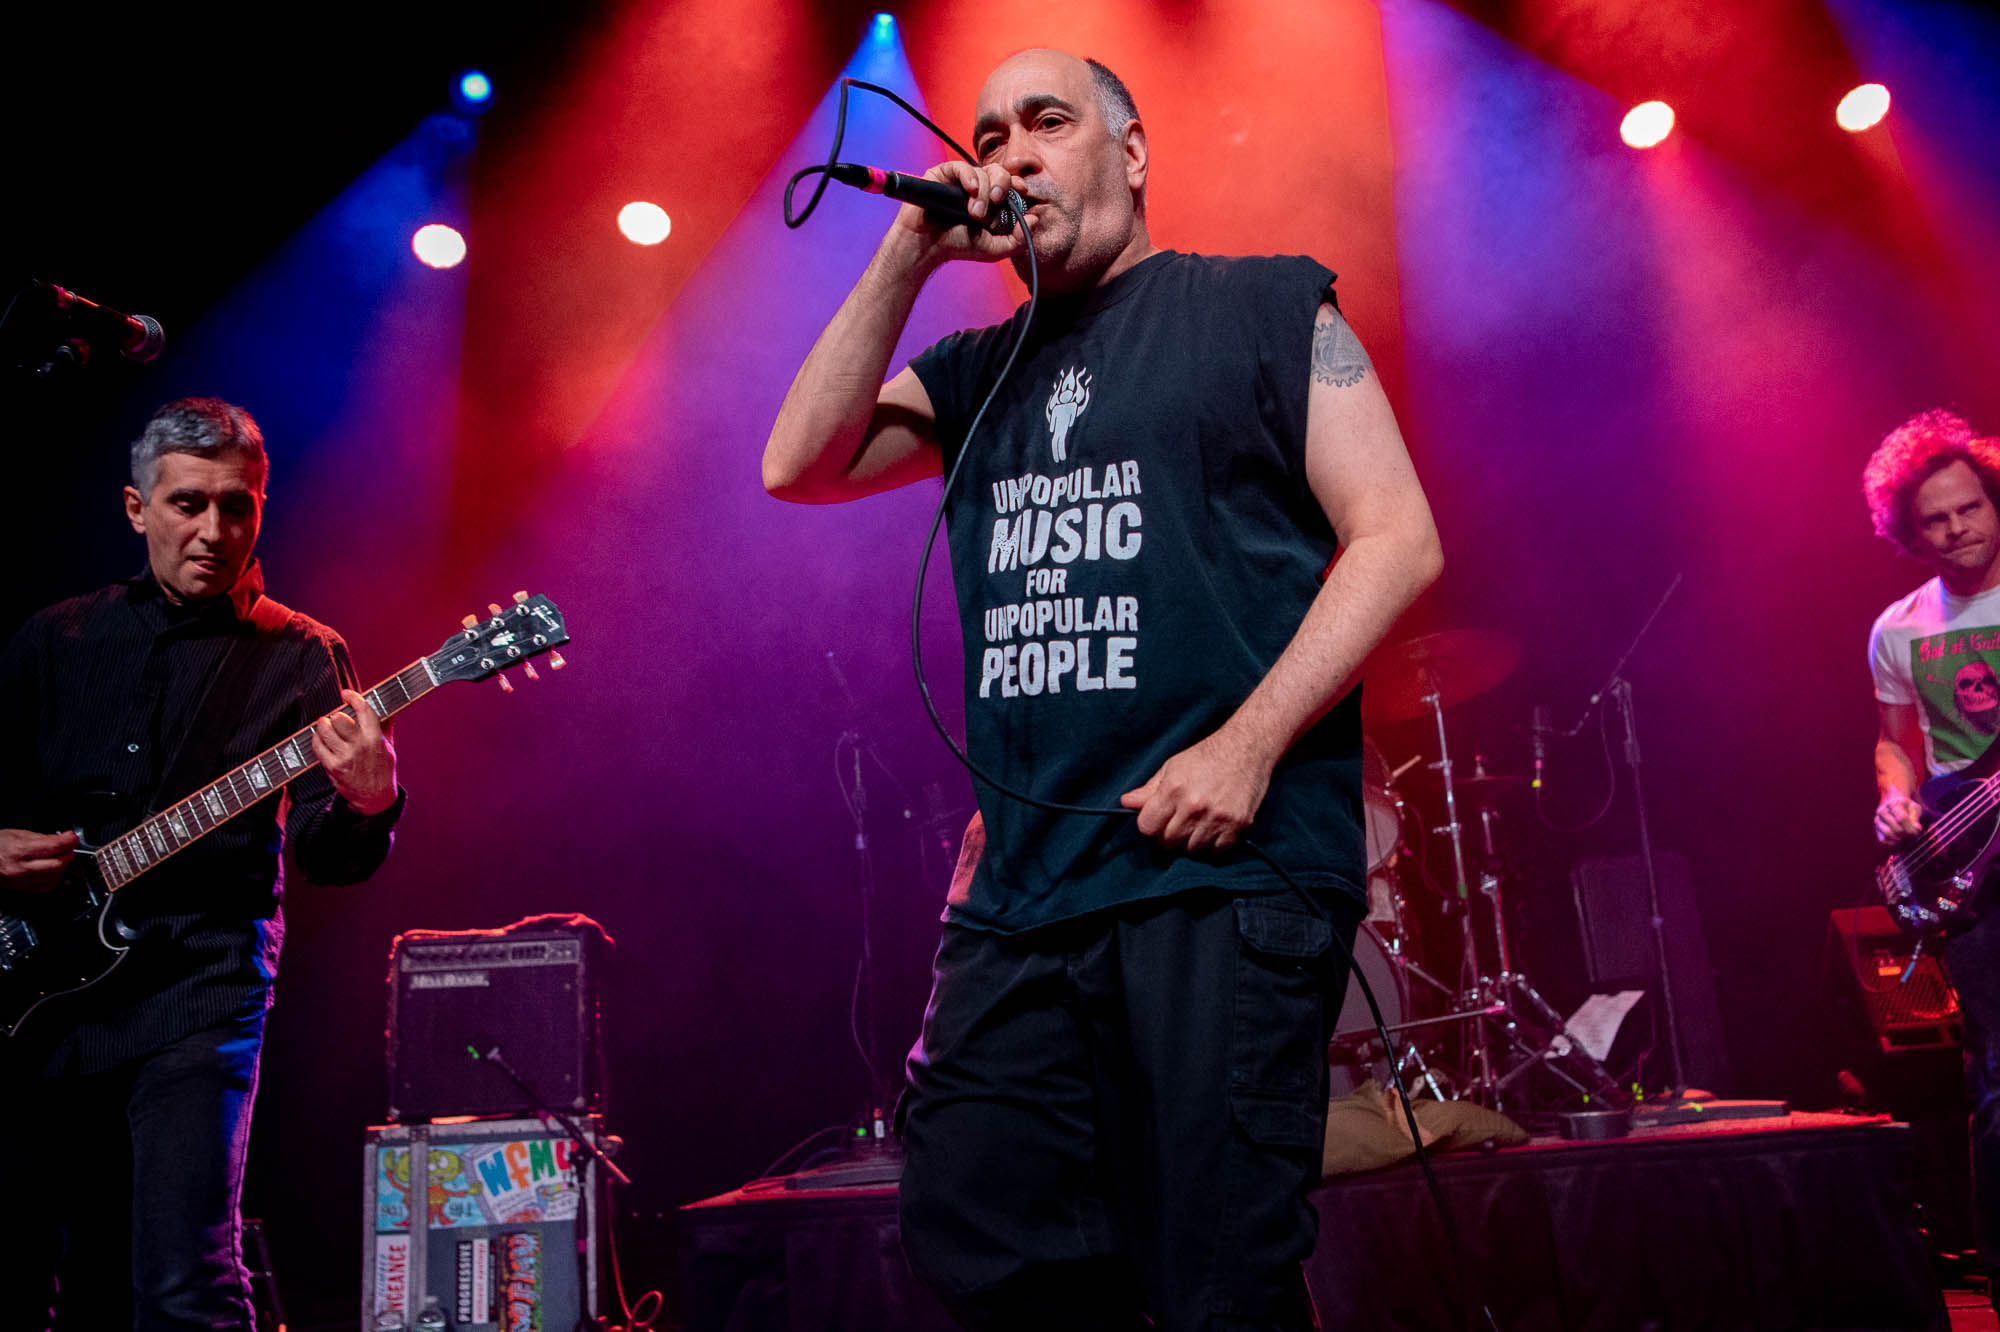 The Dead Milkmen performing at Irving Plaza on Saturday, December 15, 2018.